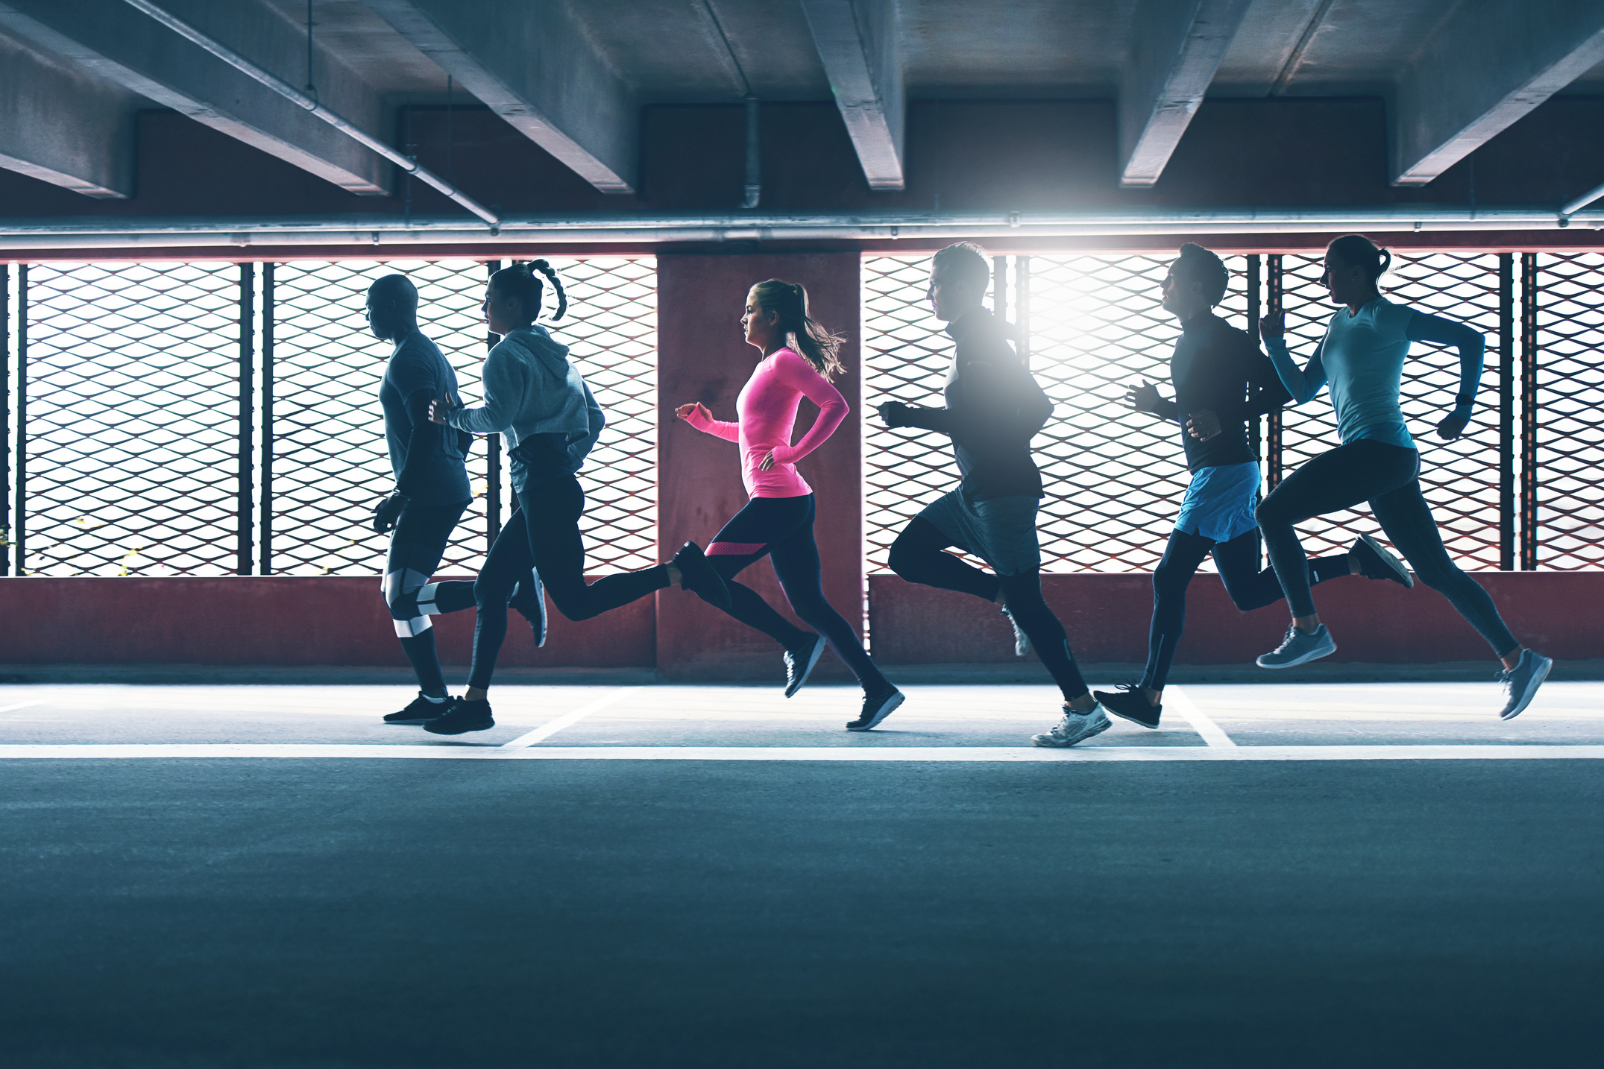 A group of runners running in a dim lit underground basement